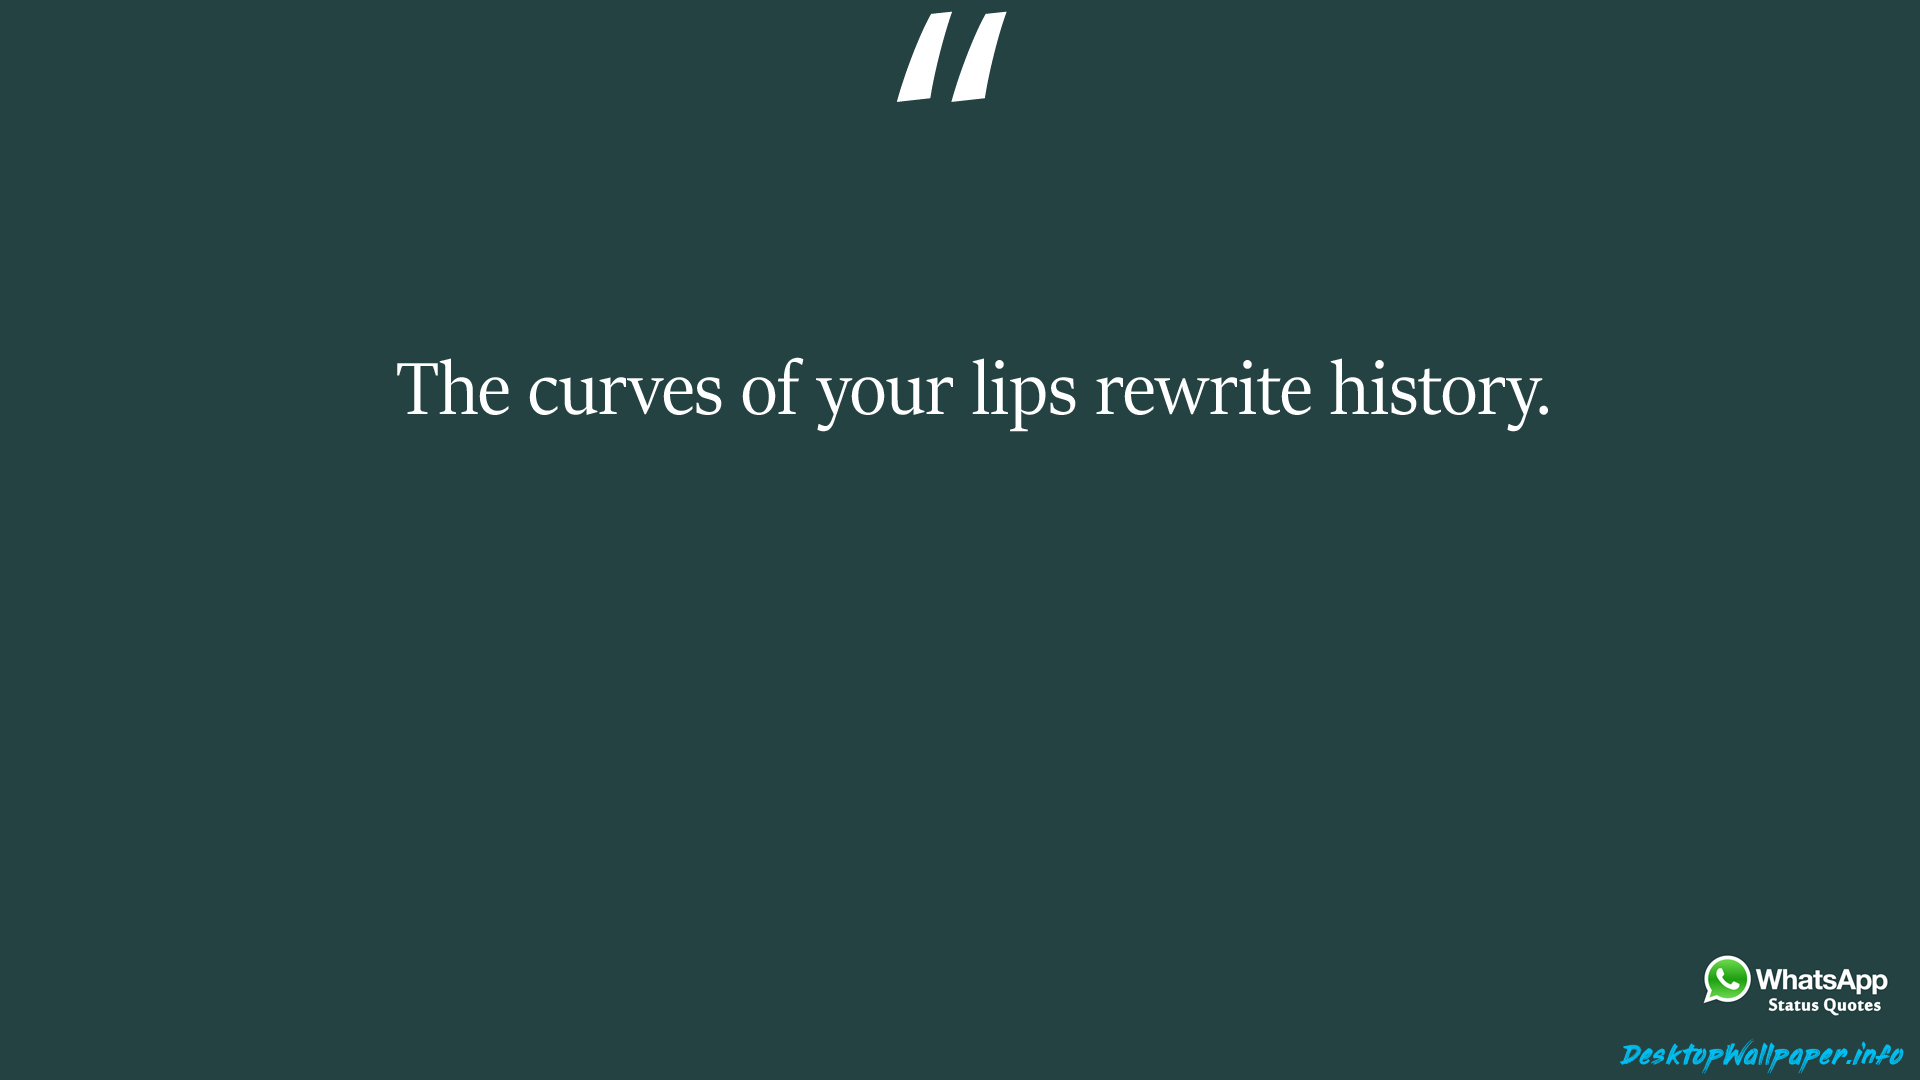 The curves of your lips rewrite history